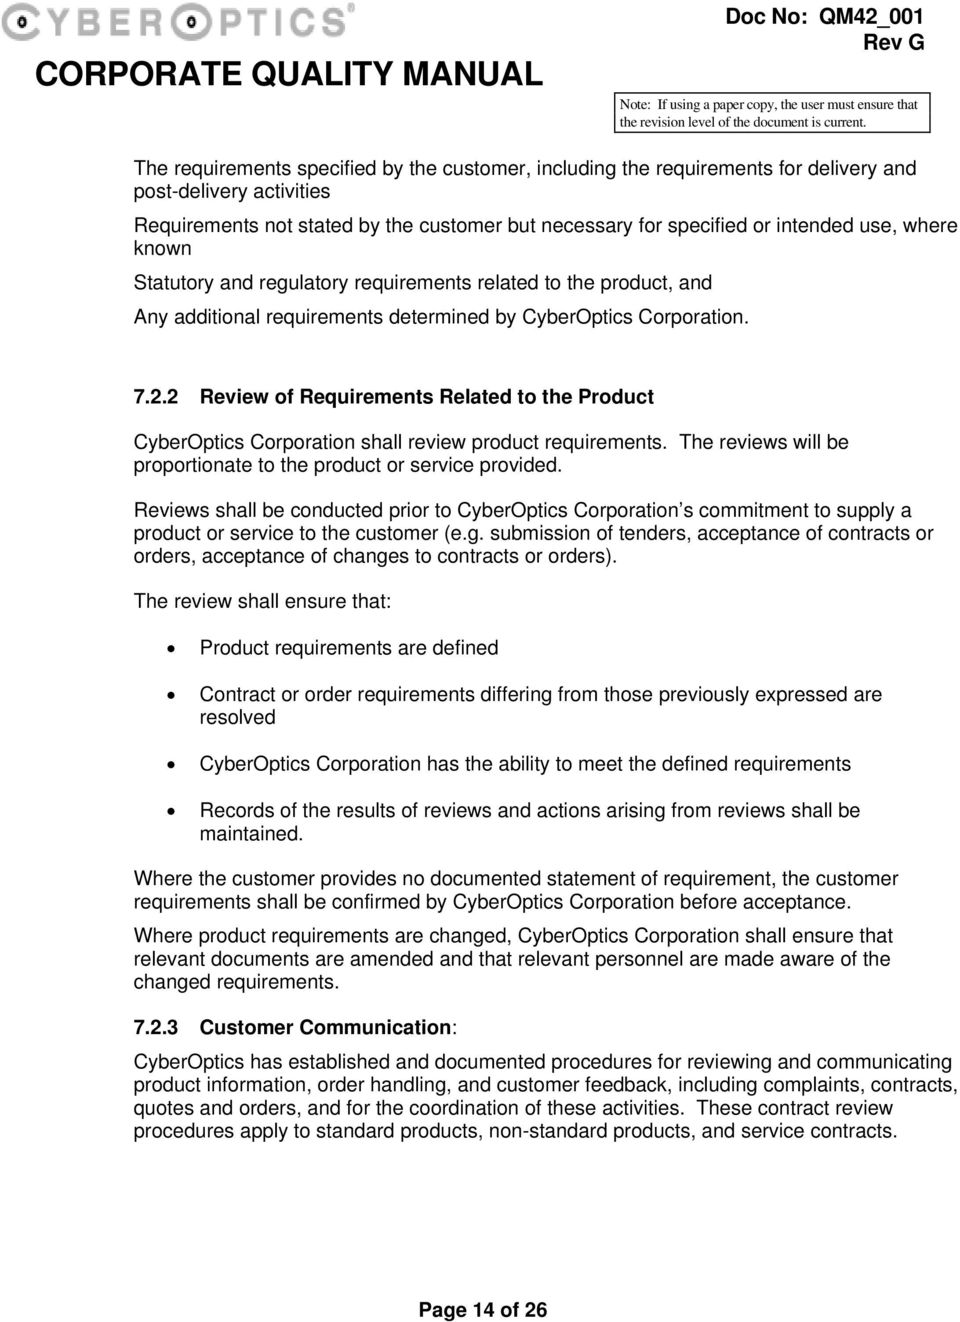 2 Review of Requirements Related to the Product CyberOptics Corporation shall review product requirements. The reviews will be proportionate to the product or service provided.